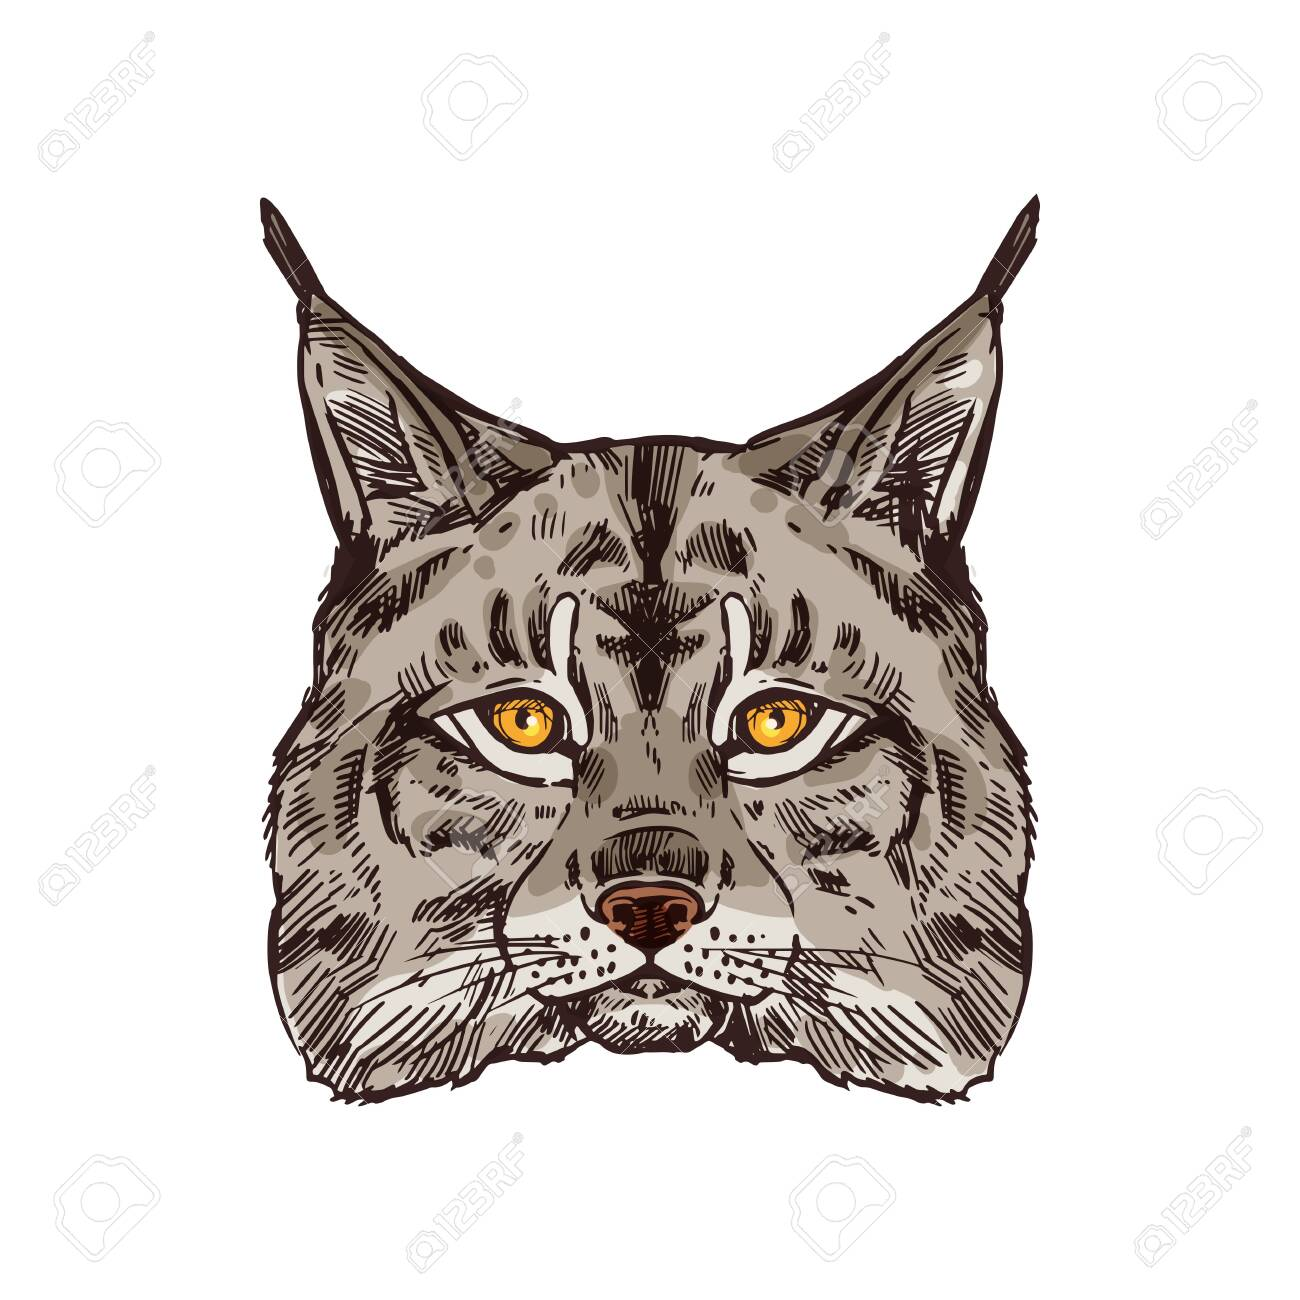 Lynx animal for hunting sport open season. Wild or bobcat predator head isolated icon, wildcat with gray fur and black tufts on ears for zoo mascot, hunter club or hunting camp design - 144393709